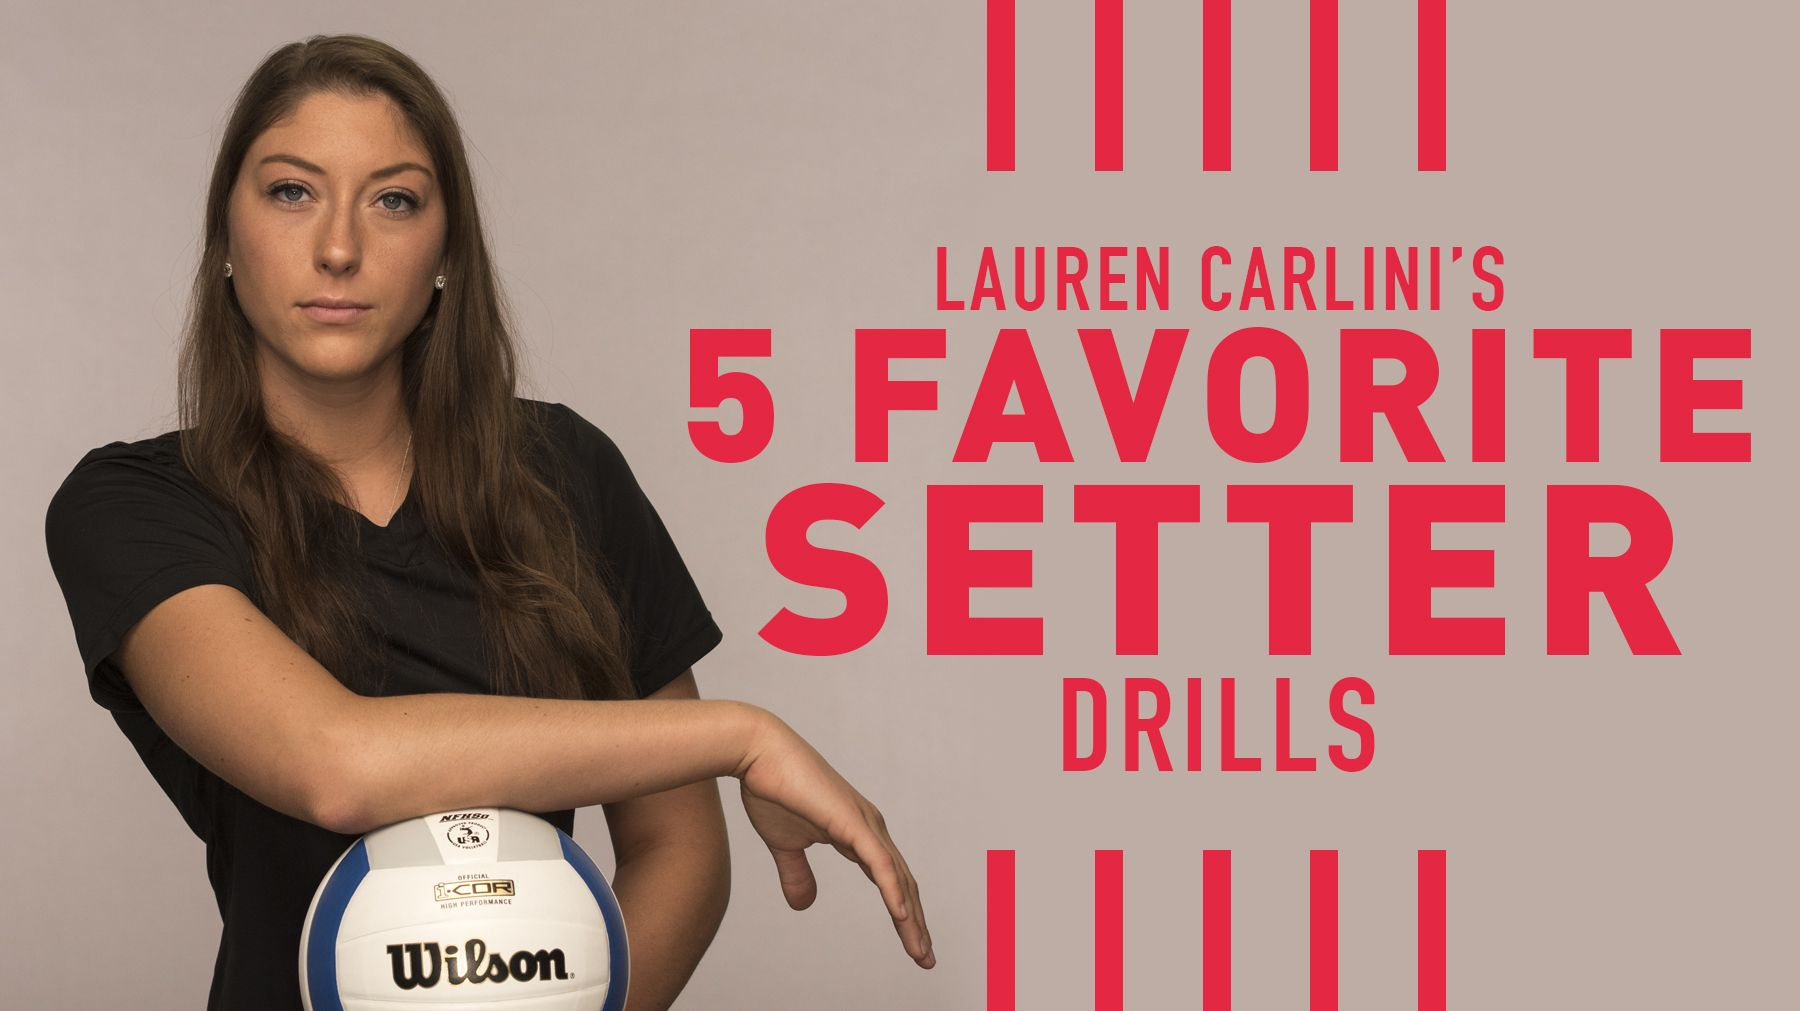 Lauren Carlini S 5 Favorite Setting Drills The Art Of Coaching Volleyball Volleyball Coaching Volleyball Volleyball Training